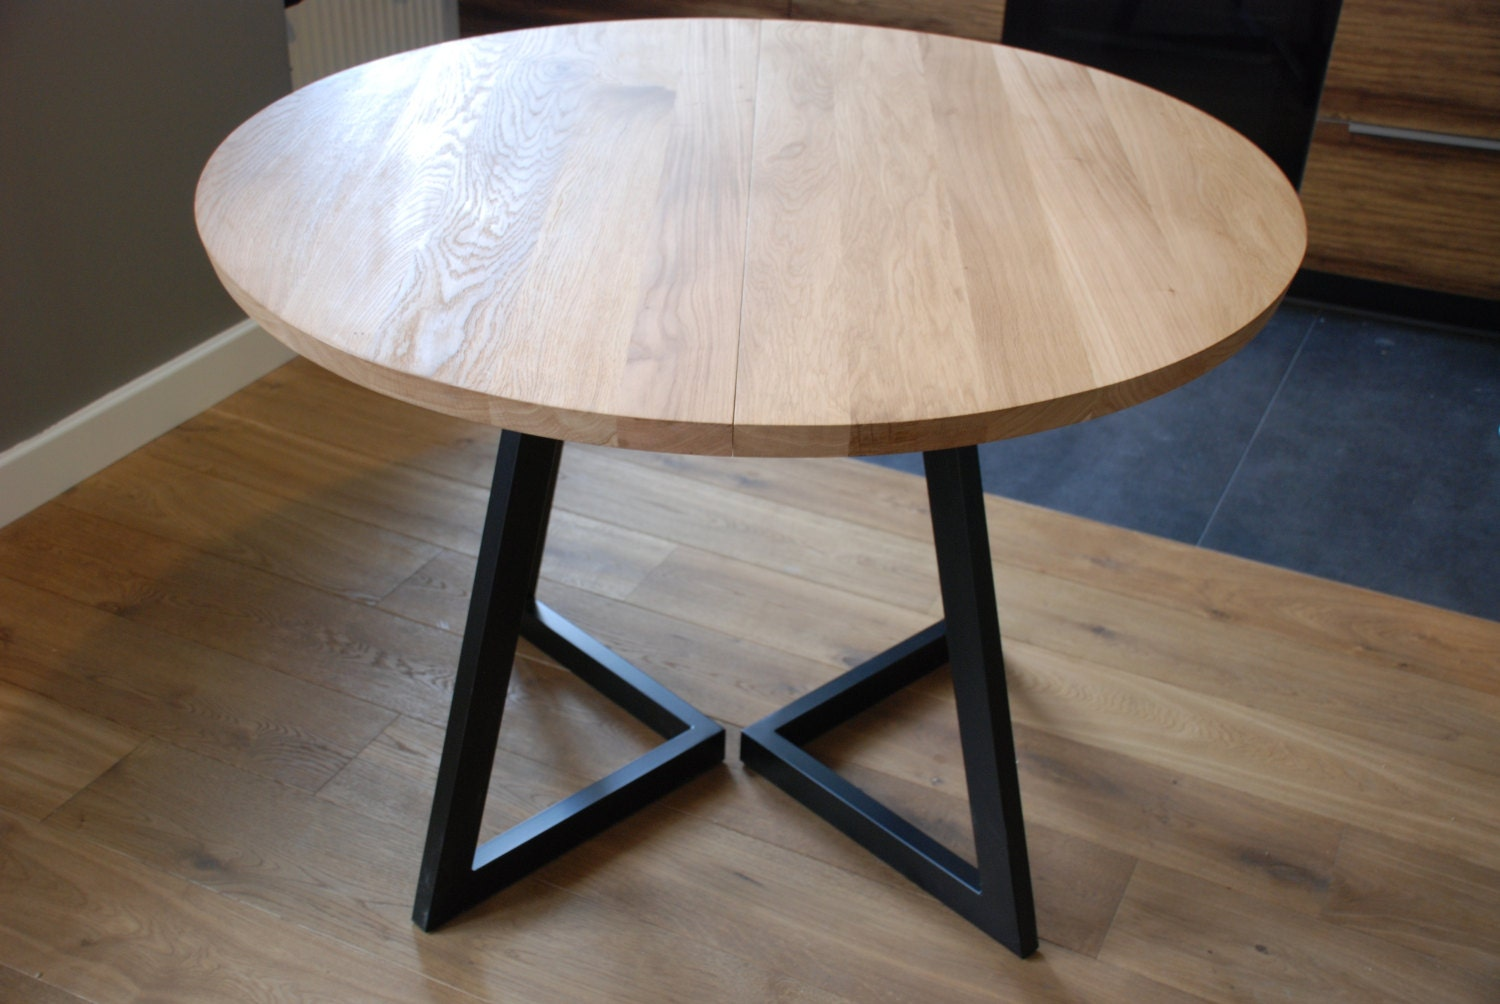 Bois et table ronde rallonges design moderne en acier for Table a manger ronde bois